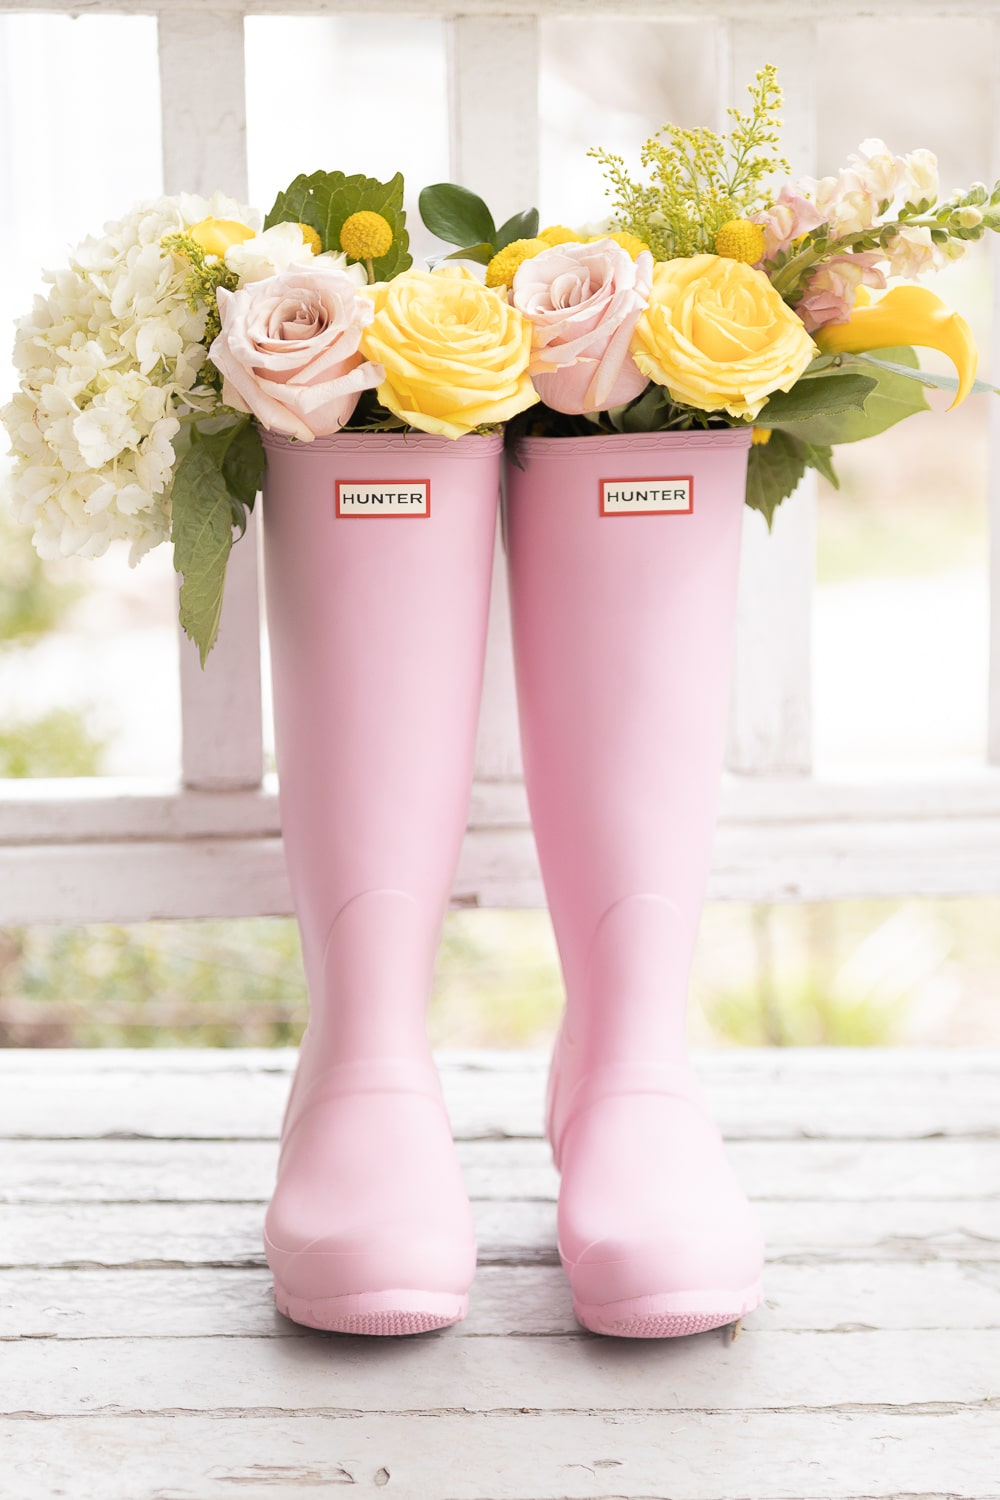 Blogger Stephanie Ziajka shares pink Hunter Boots filled with flowers, along with tips on how to clean Hunter Boots and a Hunter Boot sizing guide, on Diary of a Debutante